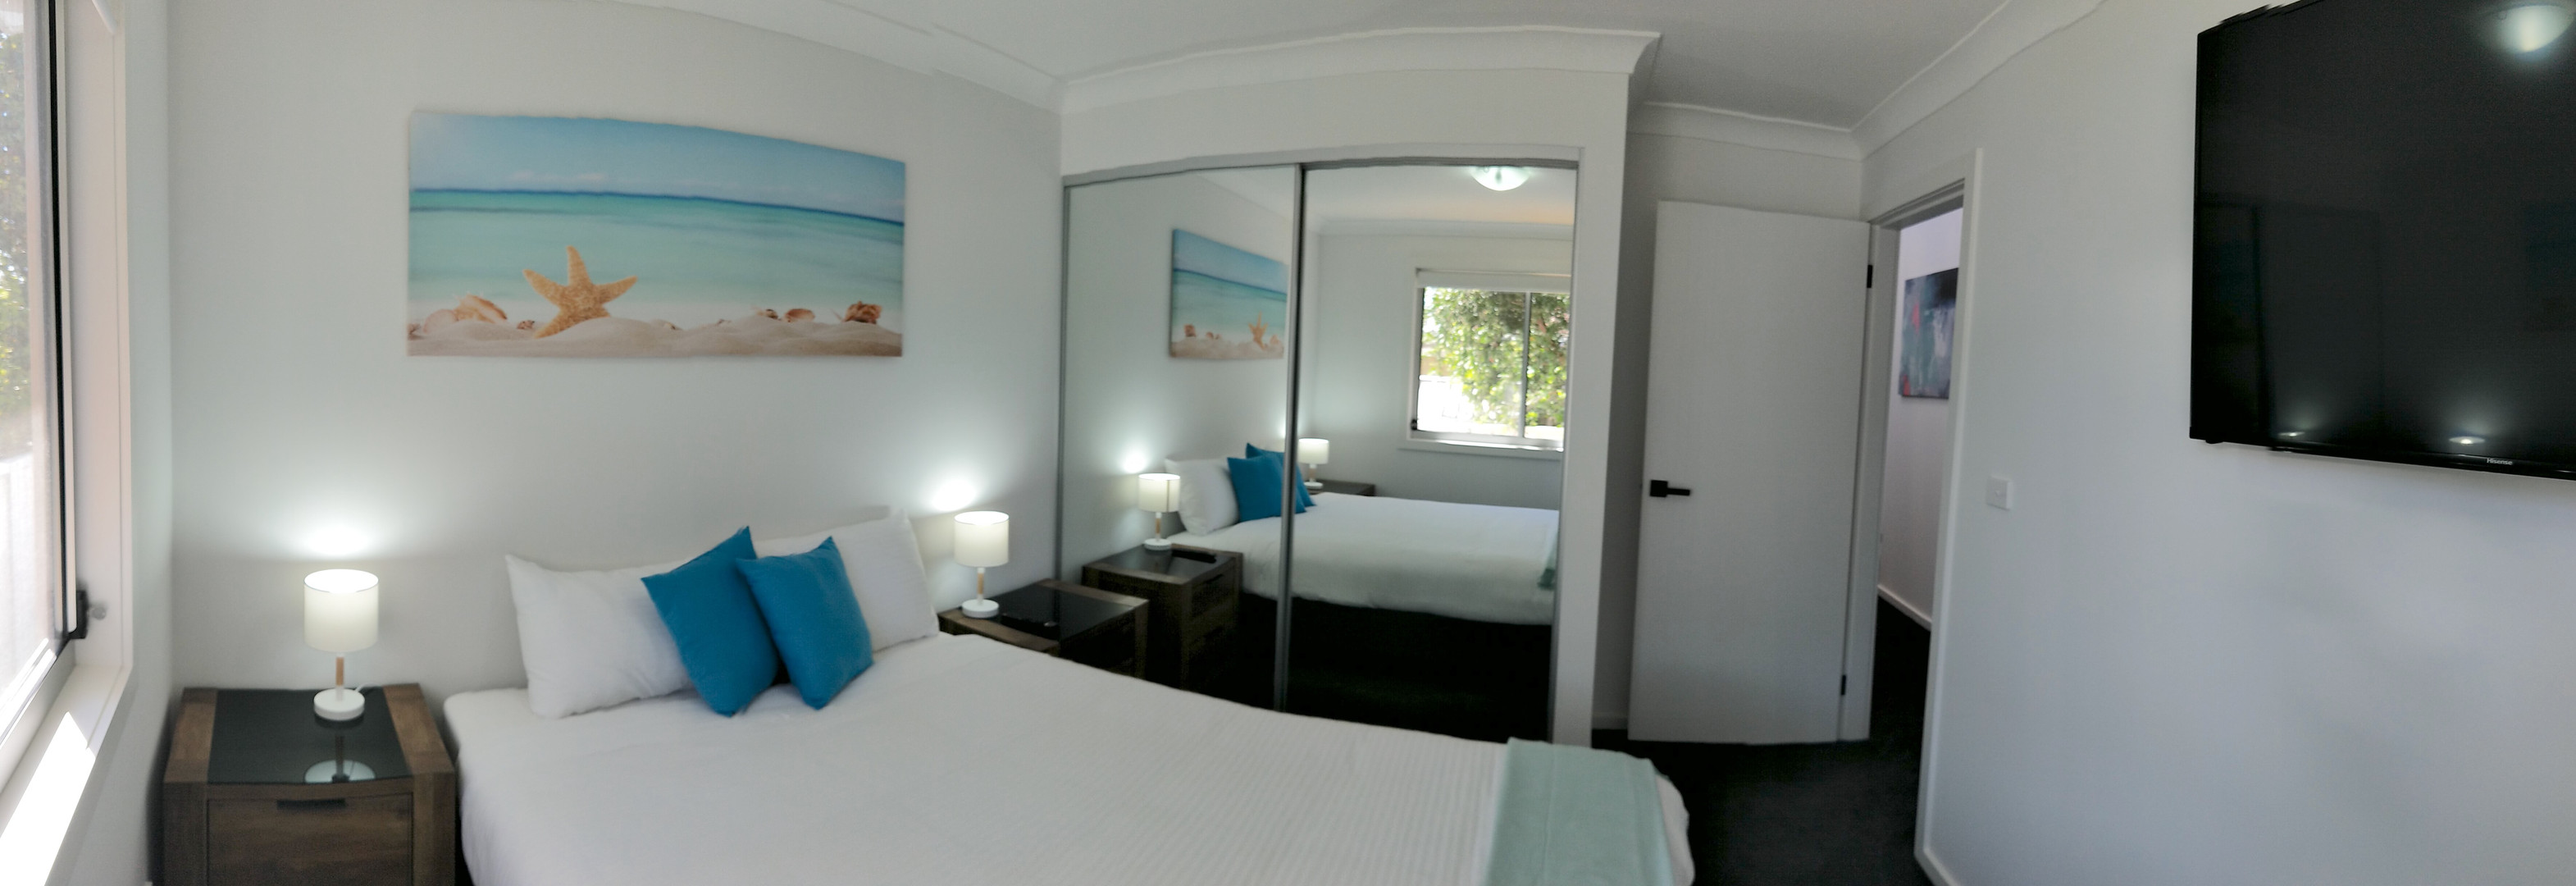 Bedroom Little Lake Apartment A